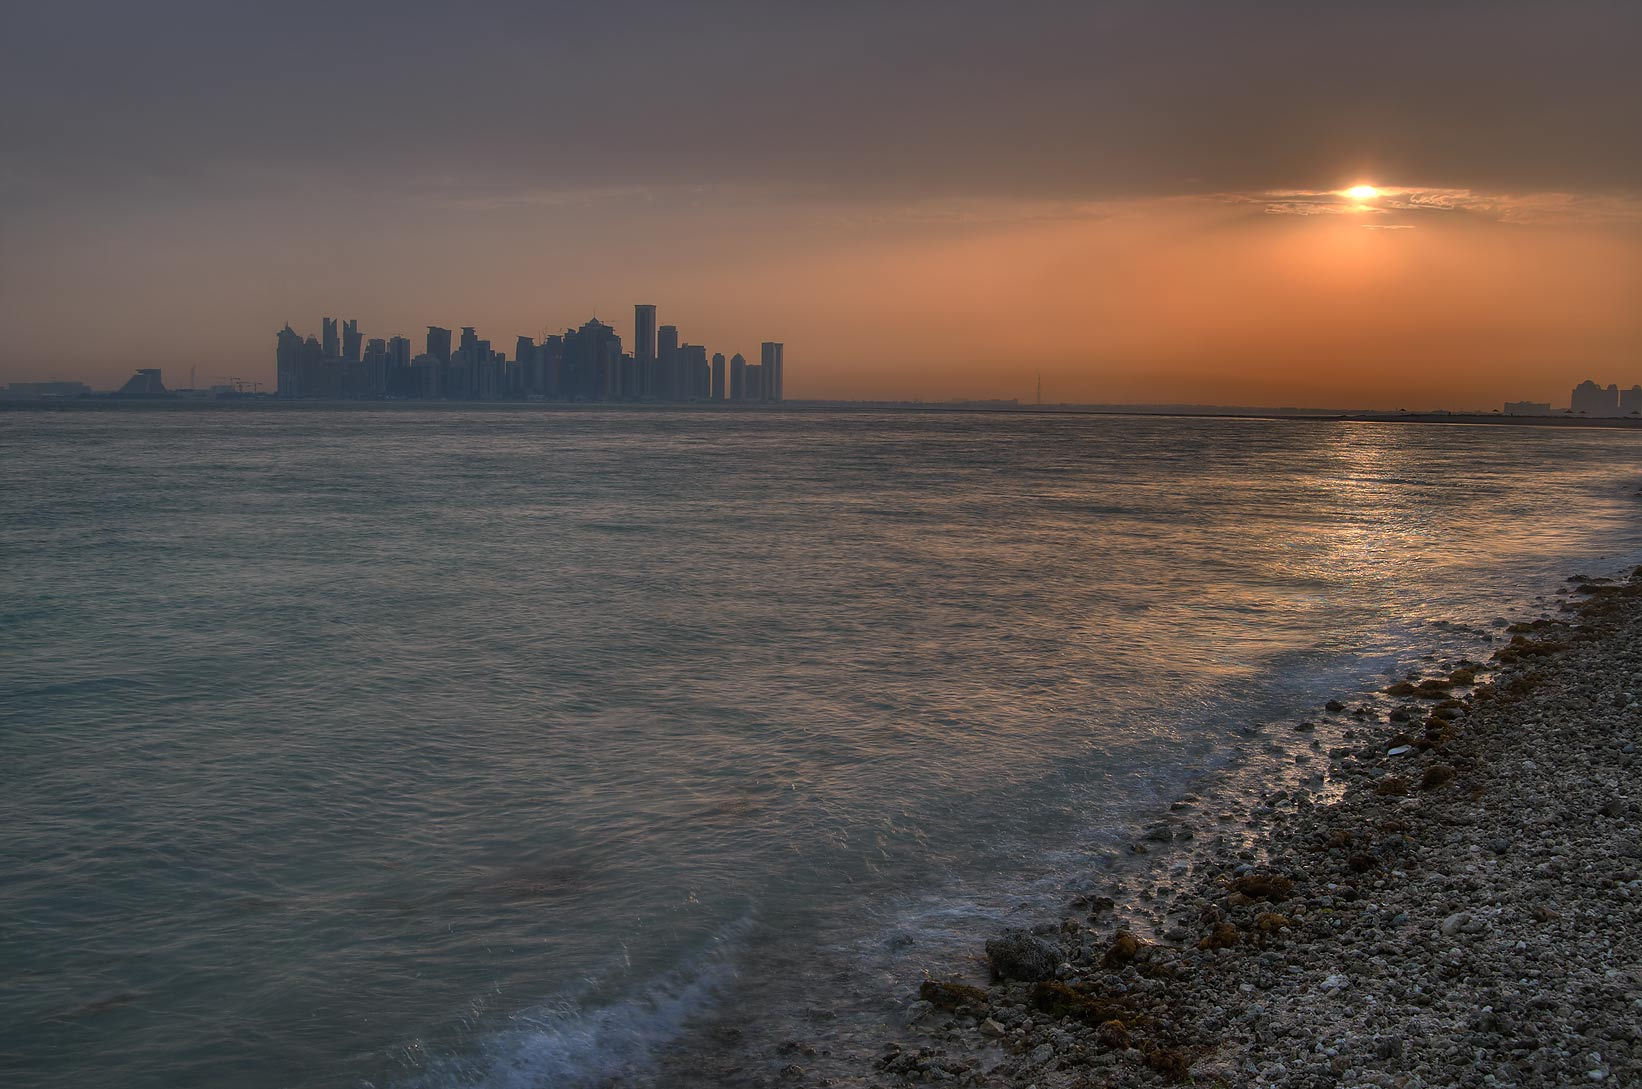 Sunset from Safliya Island near Doha, with West Bay in background. Qatar